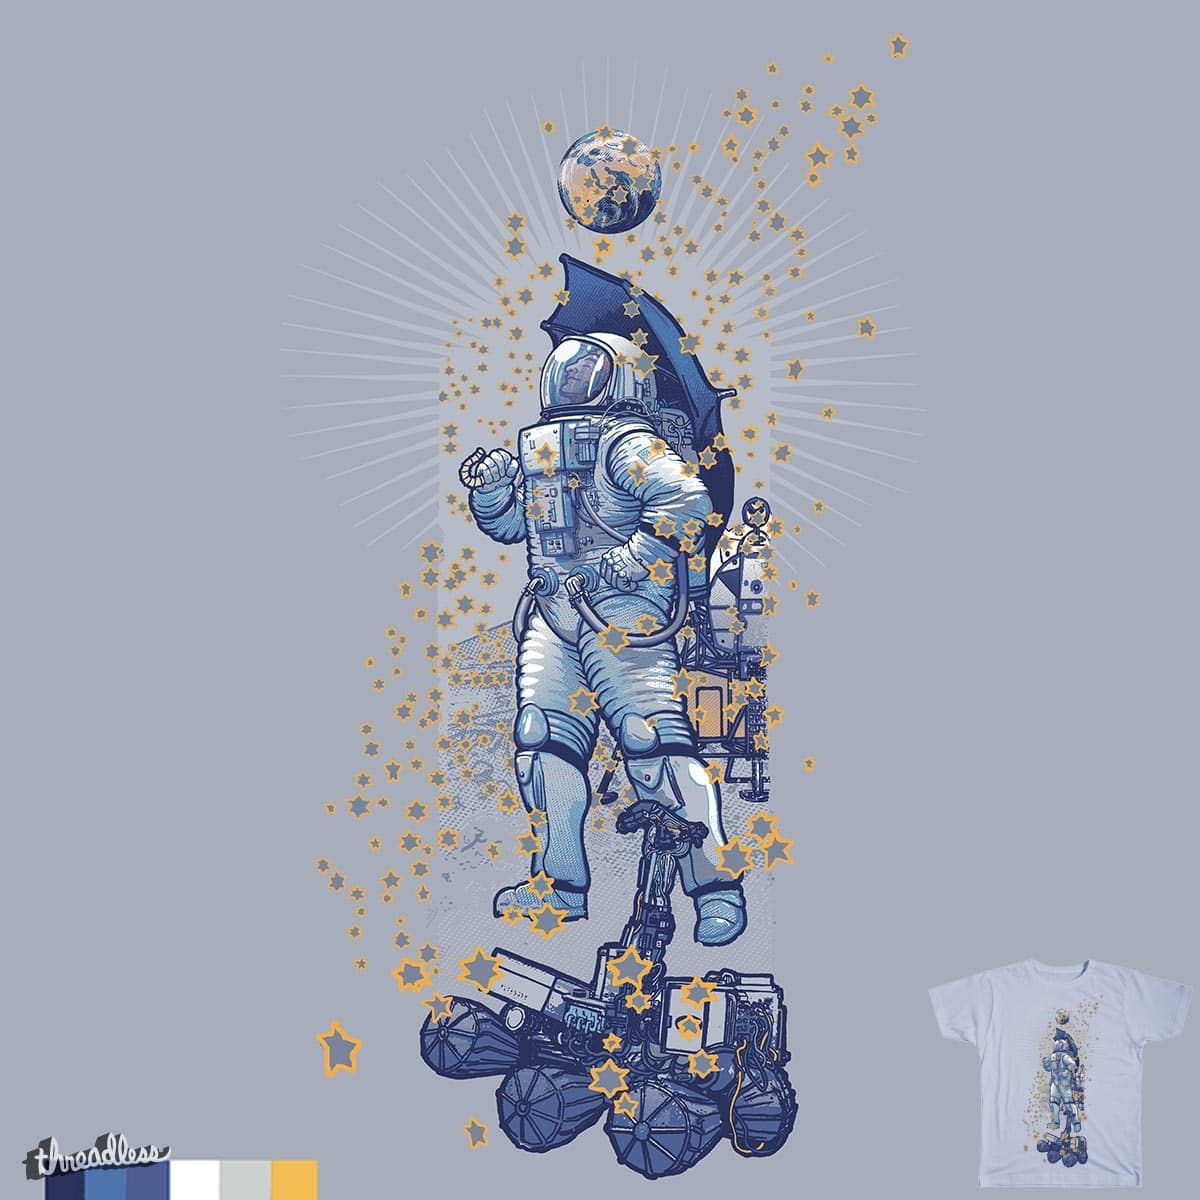 singin' in the (star)rain by choubaka360 on Threadless